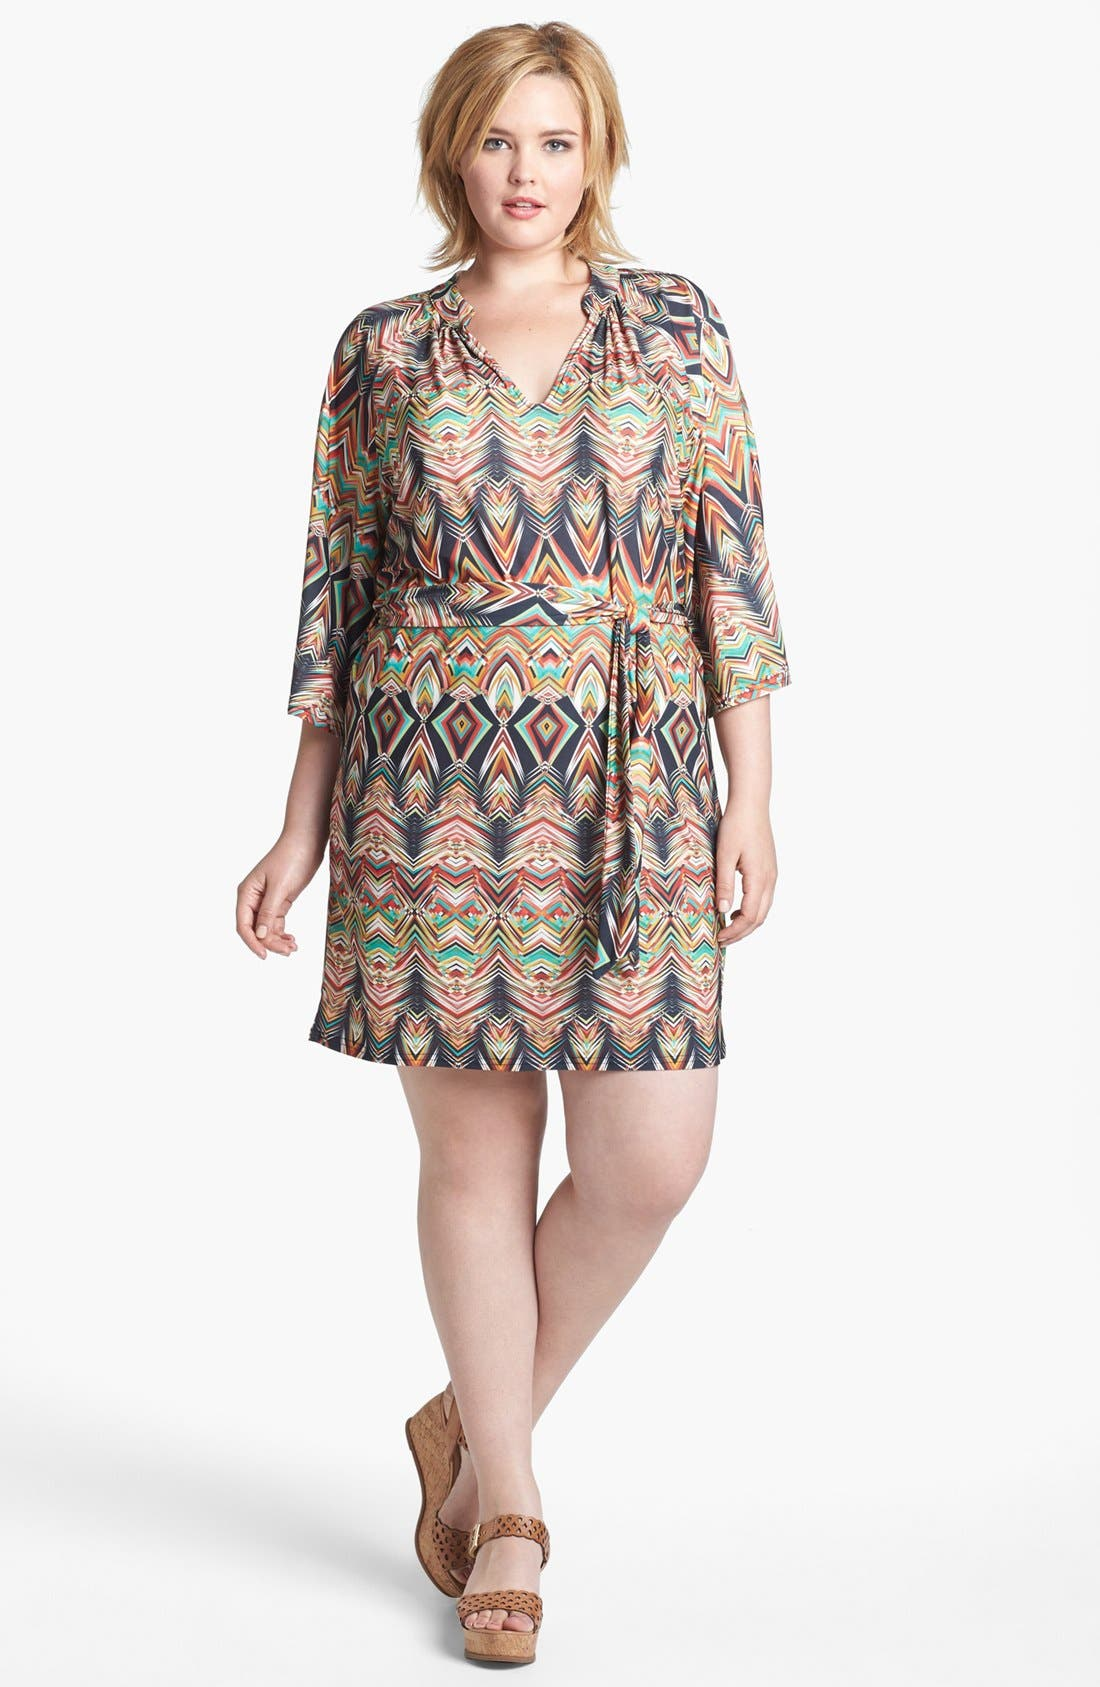 Alternate Image 1 Selected - Viereck Print Belted Tunic Dress (Plus Size)